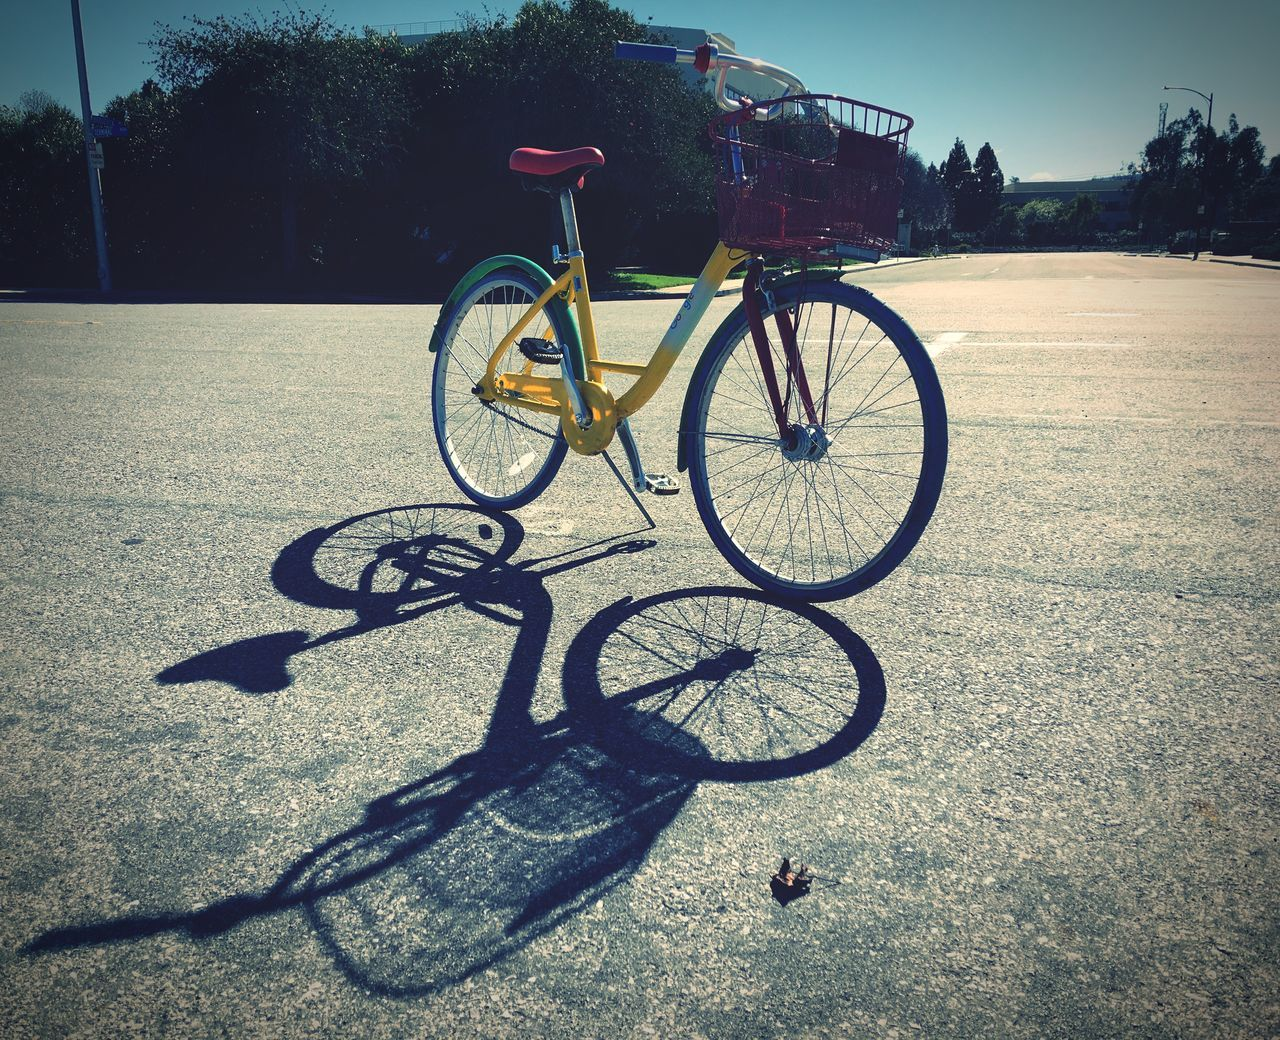 Shadows Bike Bicycle Transportation Mode Of Transport Land Vehicle Primary Colors Google Bike